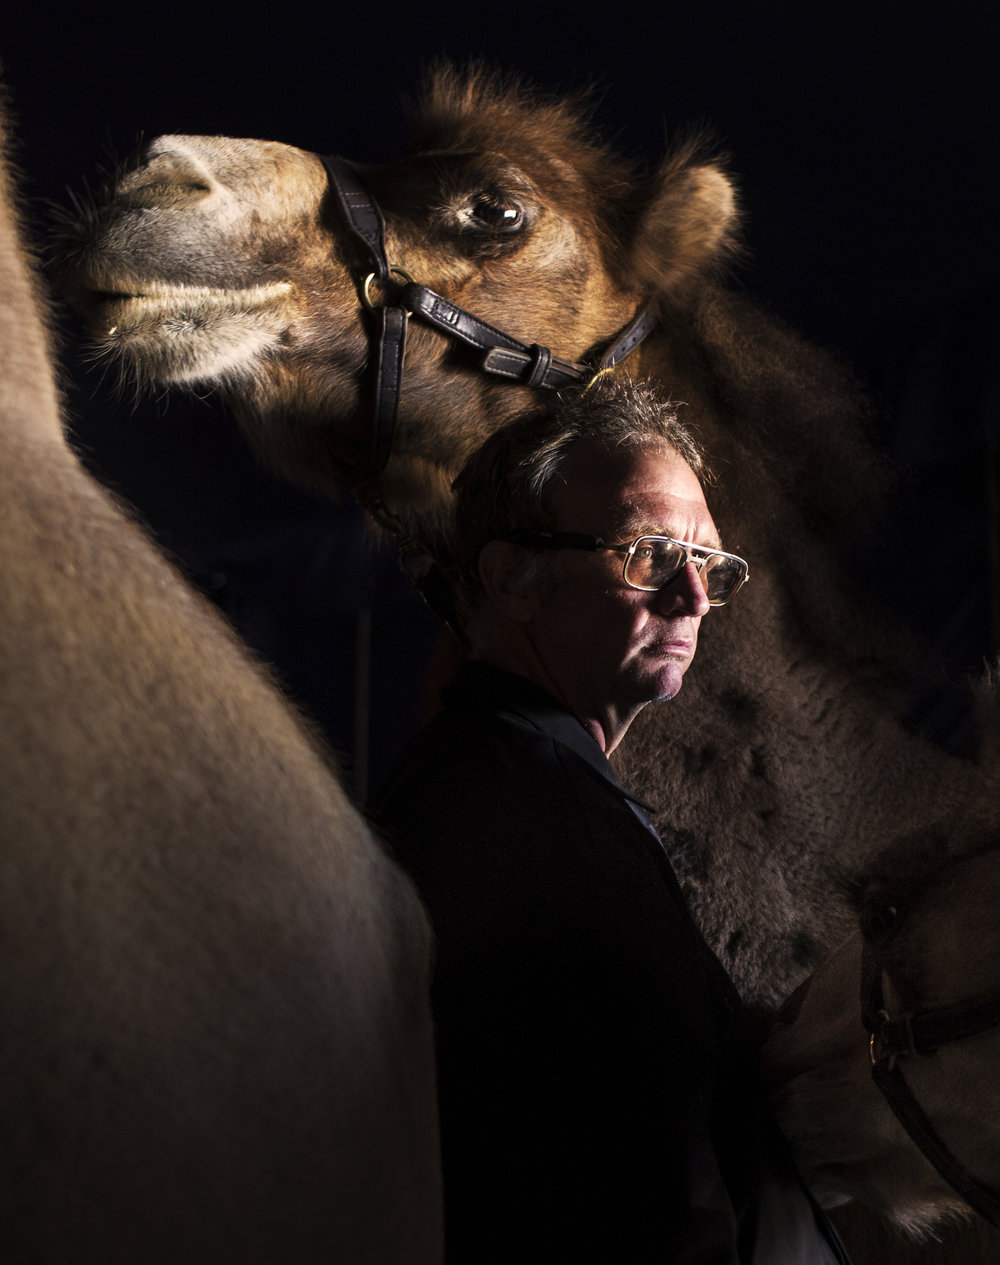 Adam Baker, an animal care taker for Coronas of Hollywood, a Florida circus performing at The Great New York State Fair in Syracuse, N.Y., tends to a group of Bactrian camels waiting for their performance. Baker has worked with Coronas for just over a year and is said to have a strong bond with many of the animals in the circus. Sept. 2, 2017.